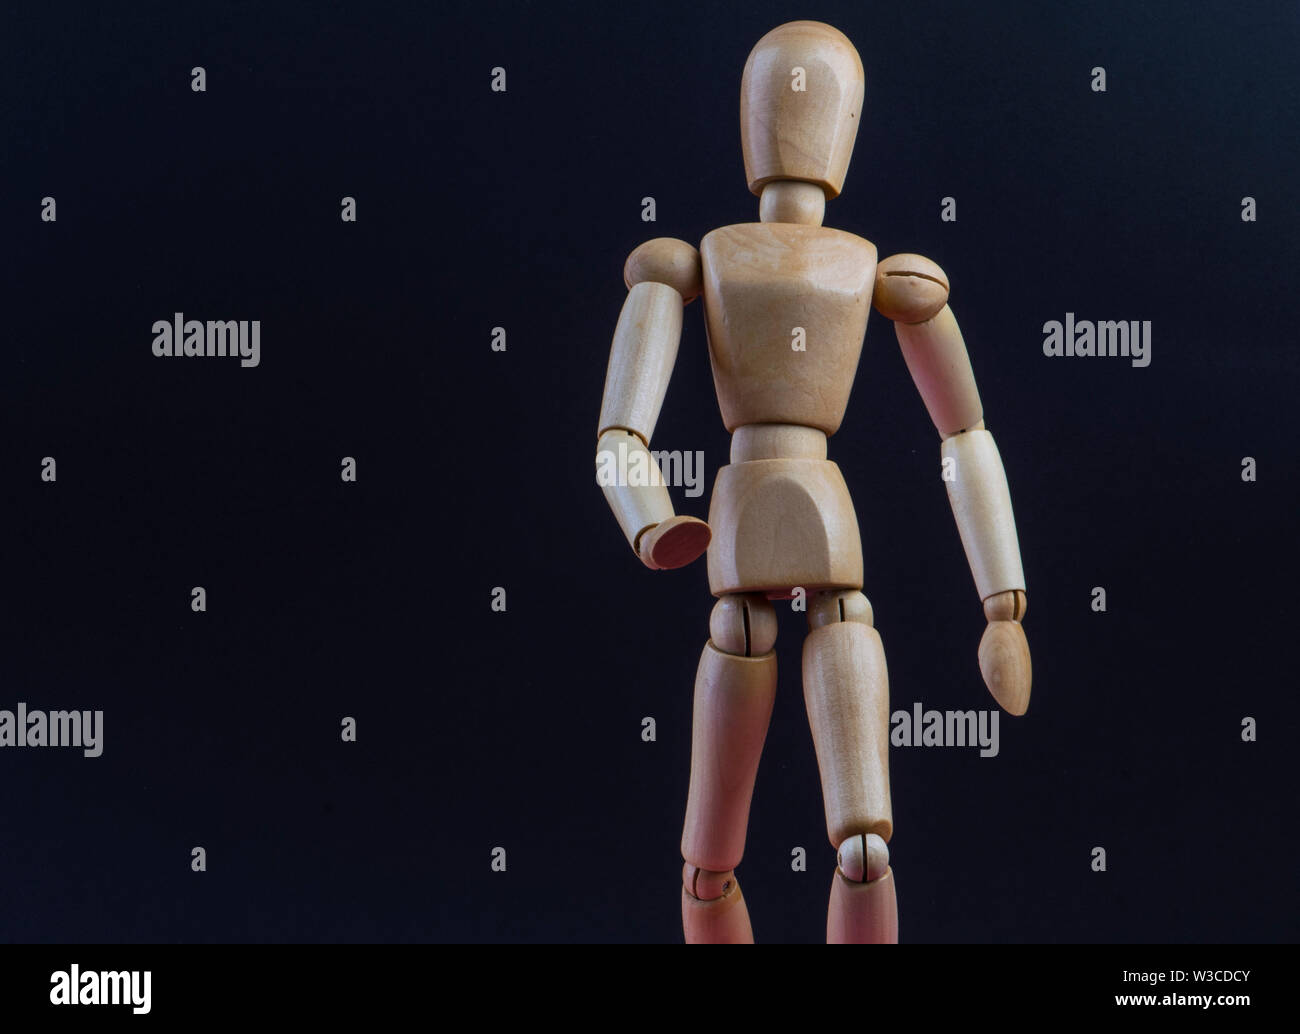 wooden mannequin in action and movement - Stock Image